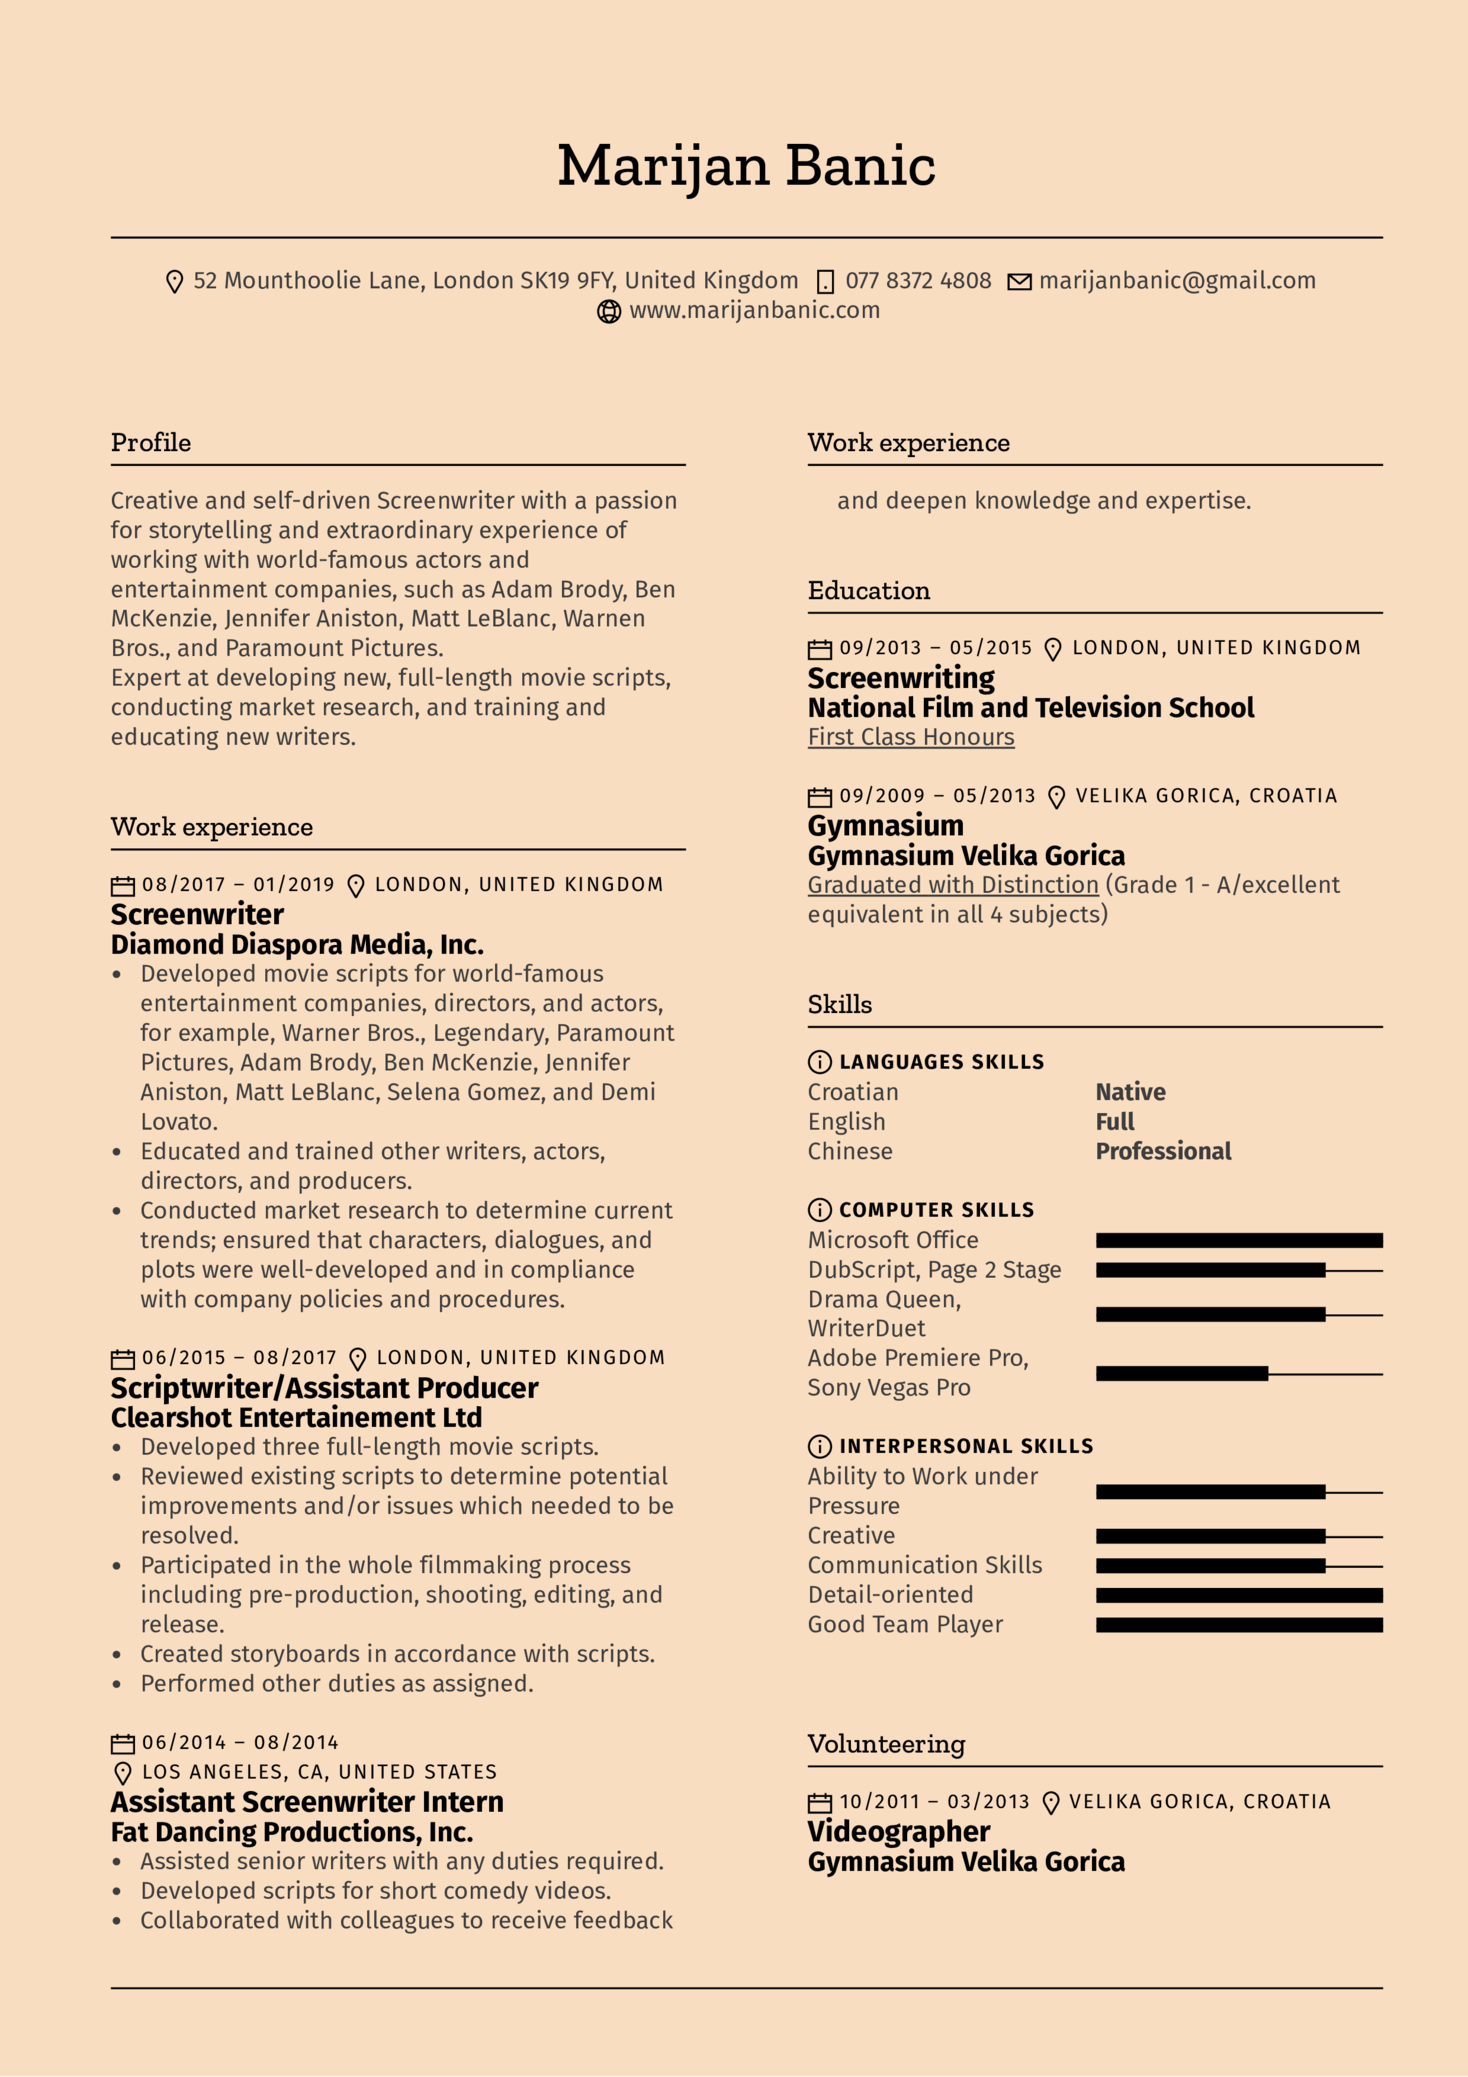 Screenwriter Resume Template (Teil 1)